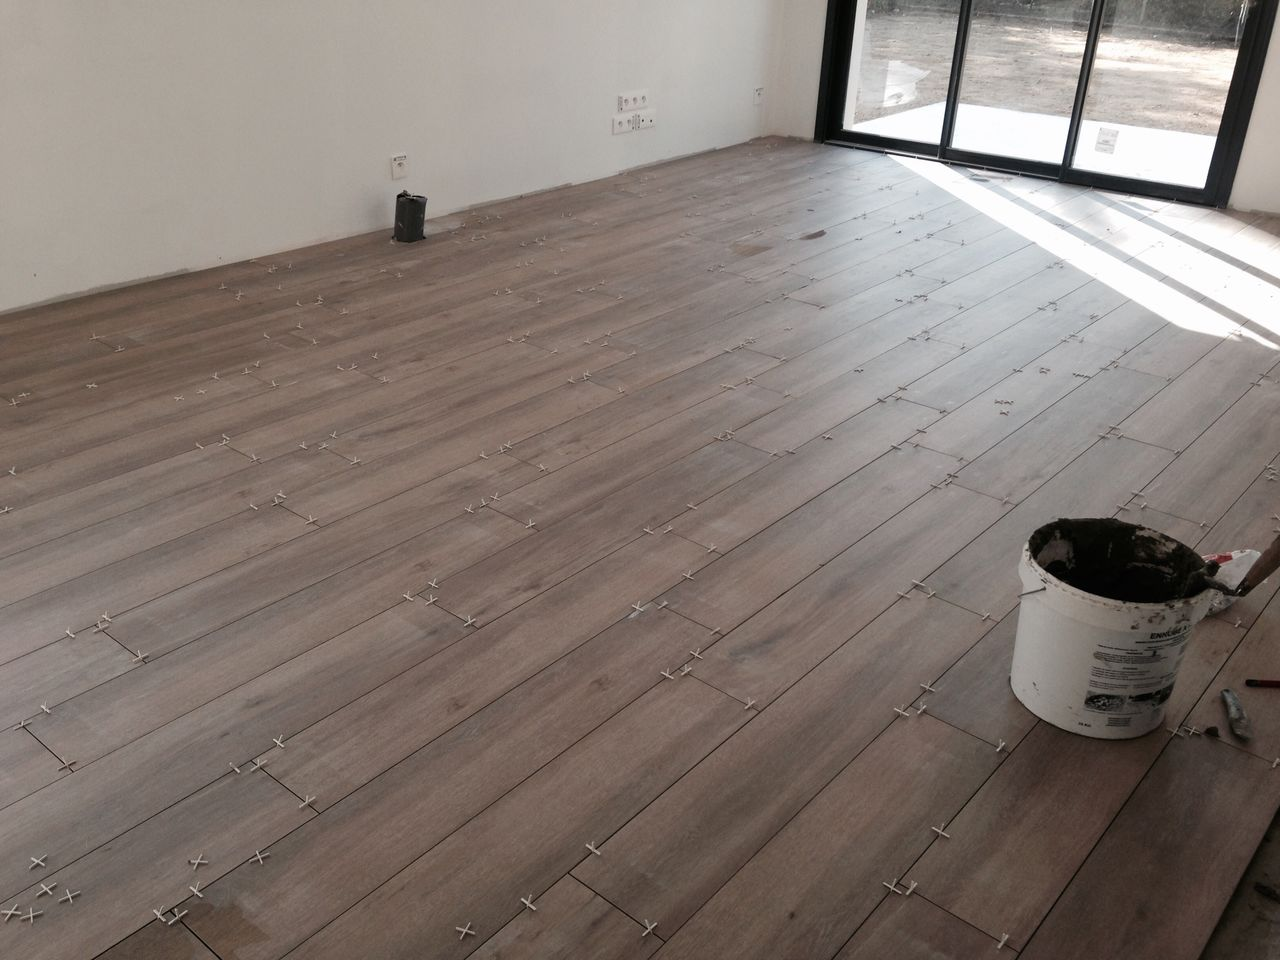 Quelle couleur de joints pour carrelage imitation parquet for Pose carrelage sol imitation parquet